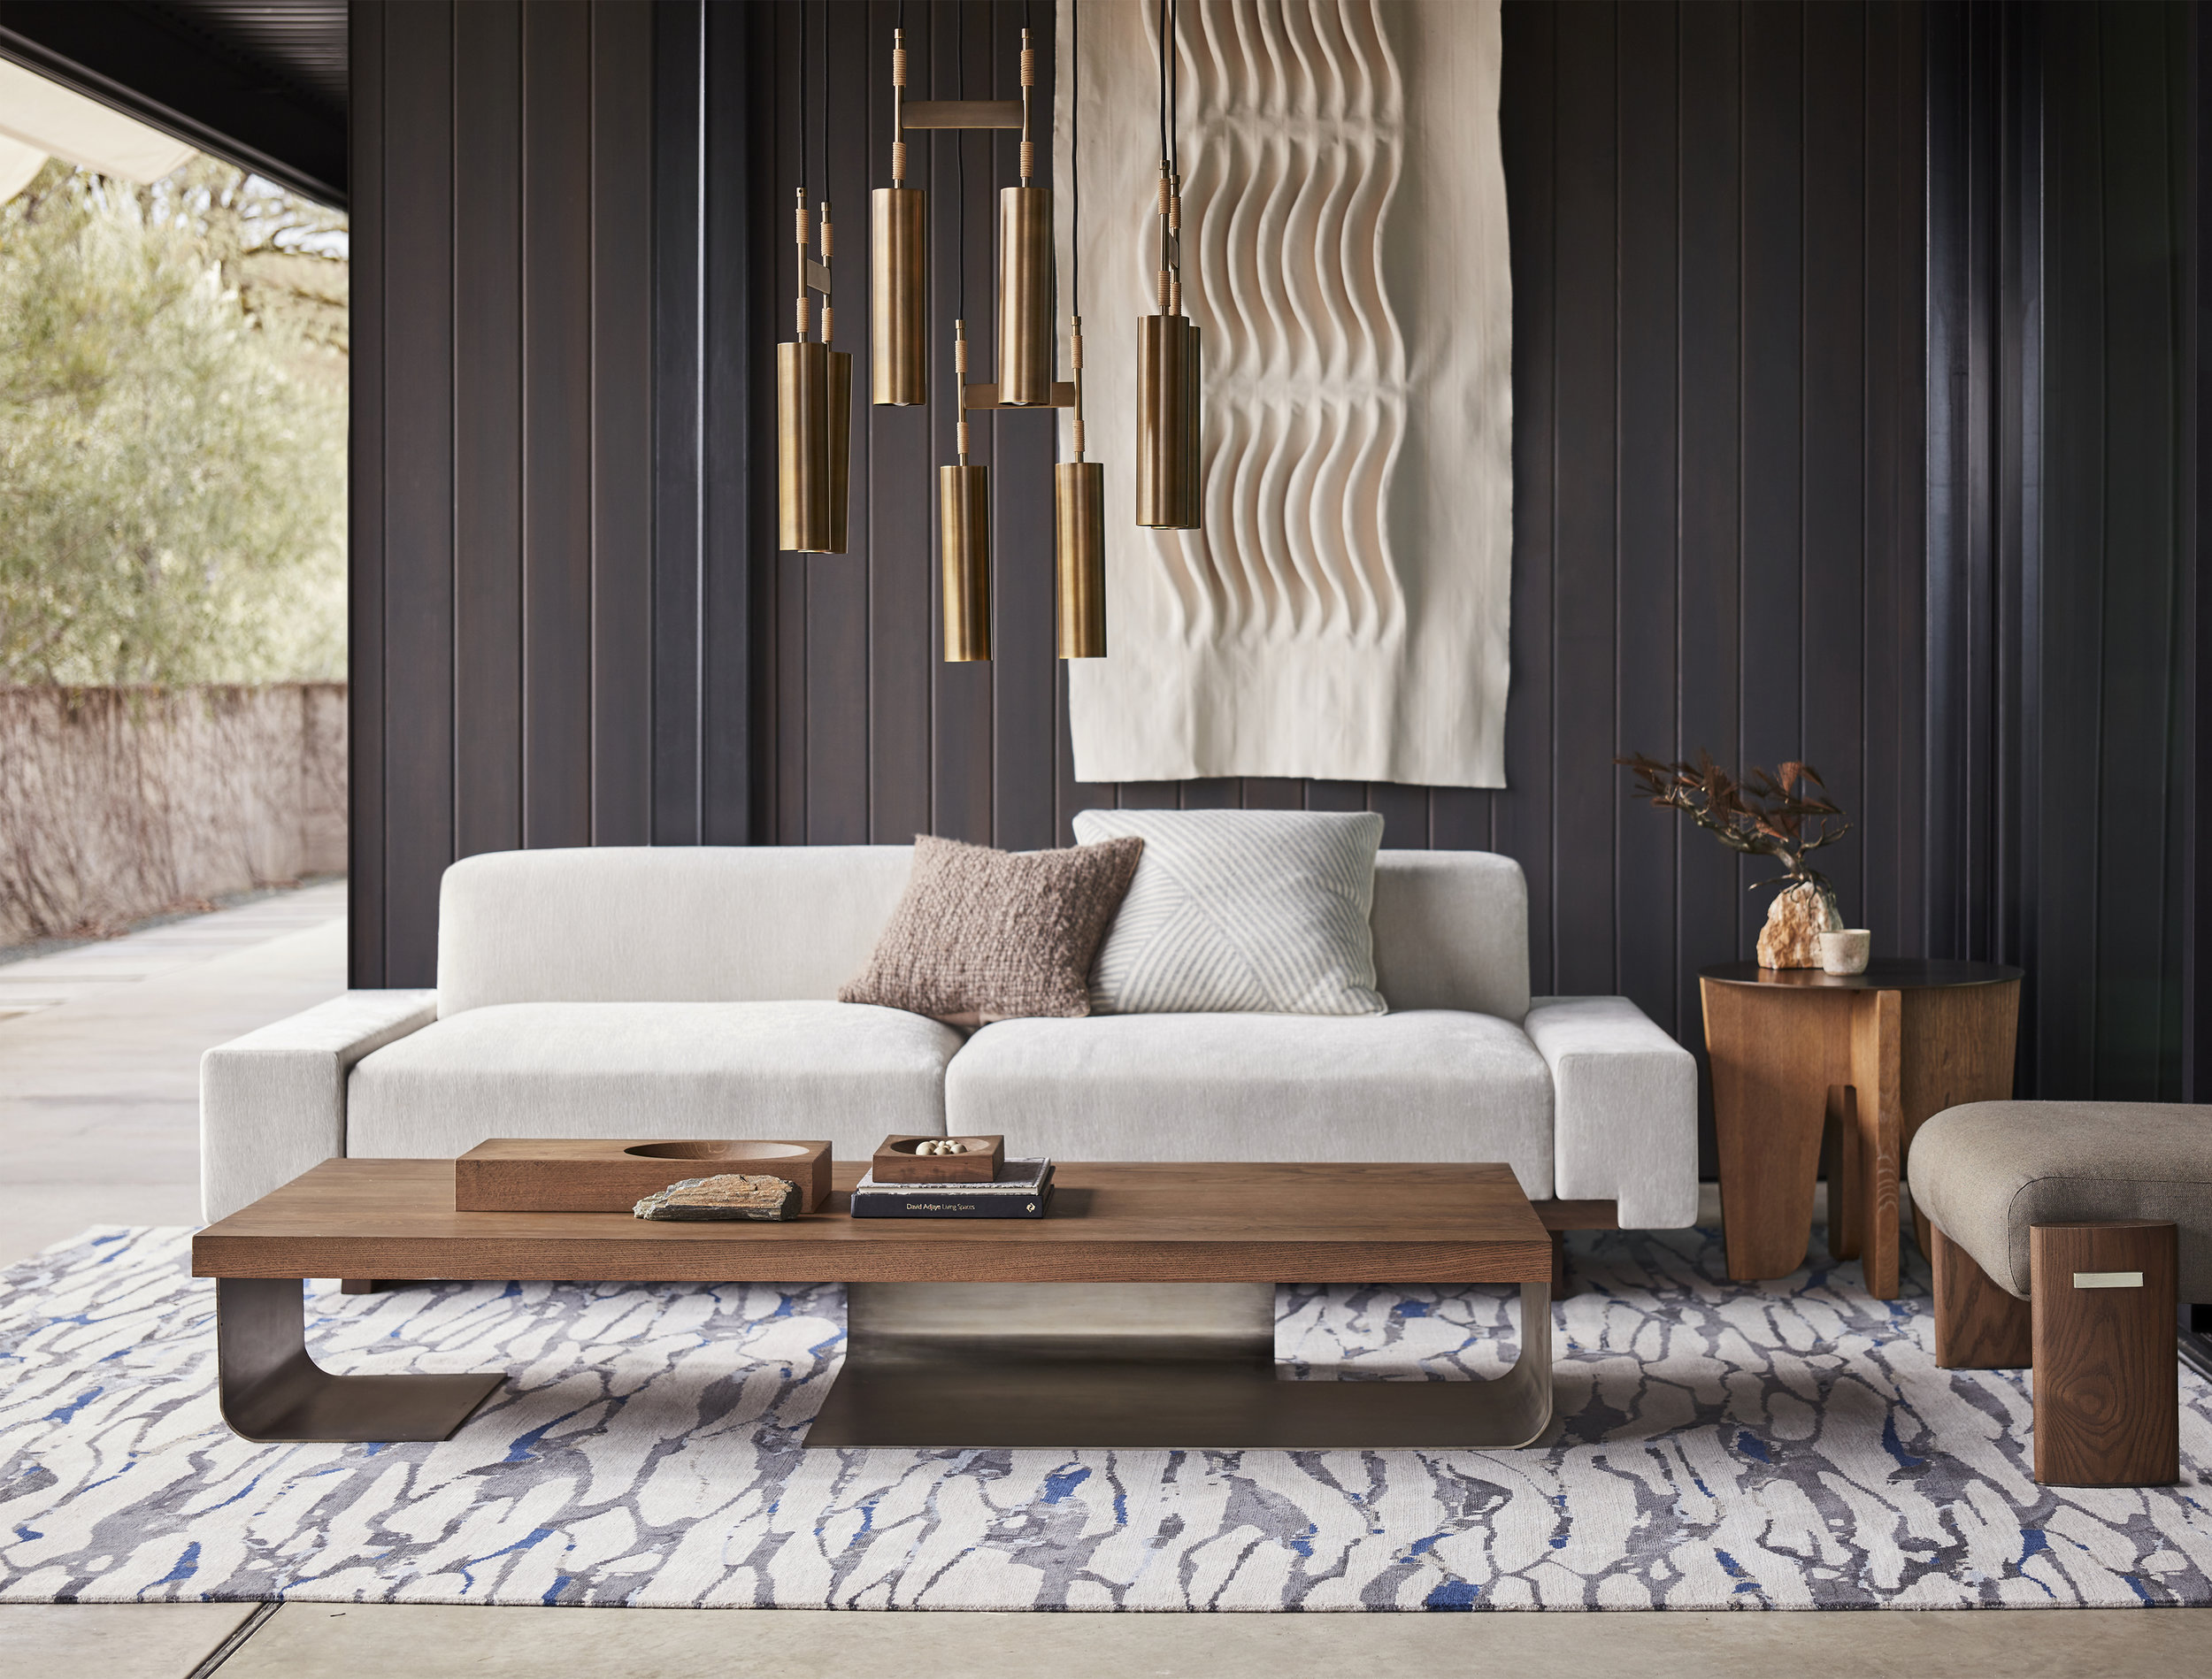 McGuire Furniture Company Lifestyle shoot  Photo: Thomas Kuo | Styling: Aubrey Maxwell